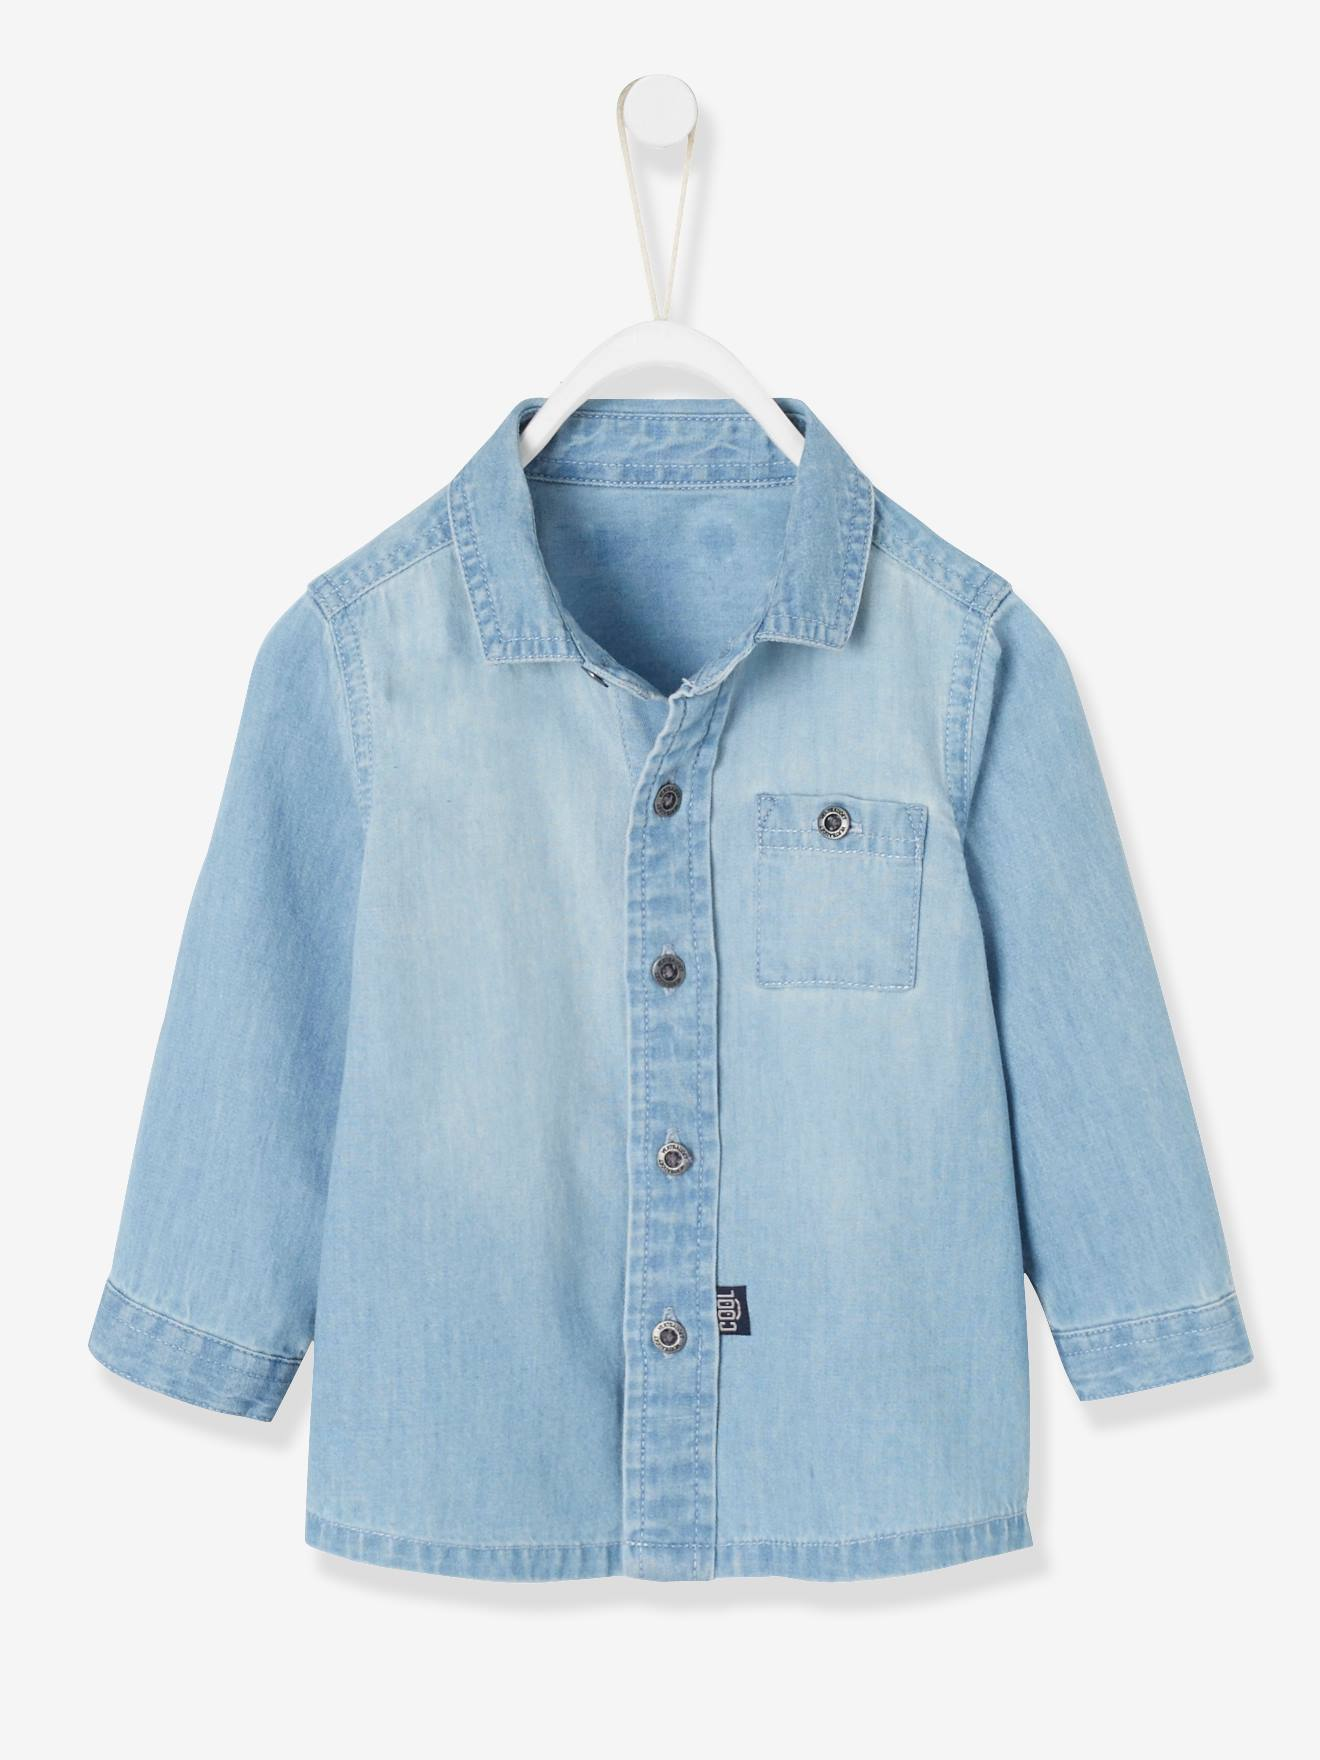 0502cb566 Denim Shirt for Baby Boys - blue light wasched